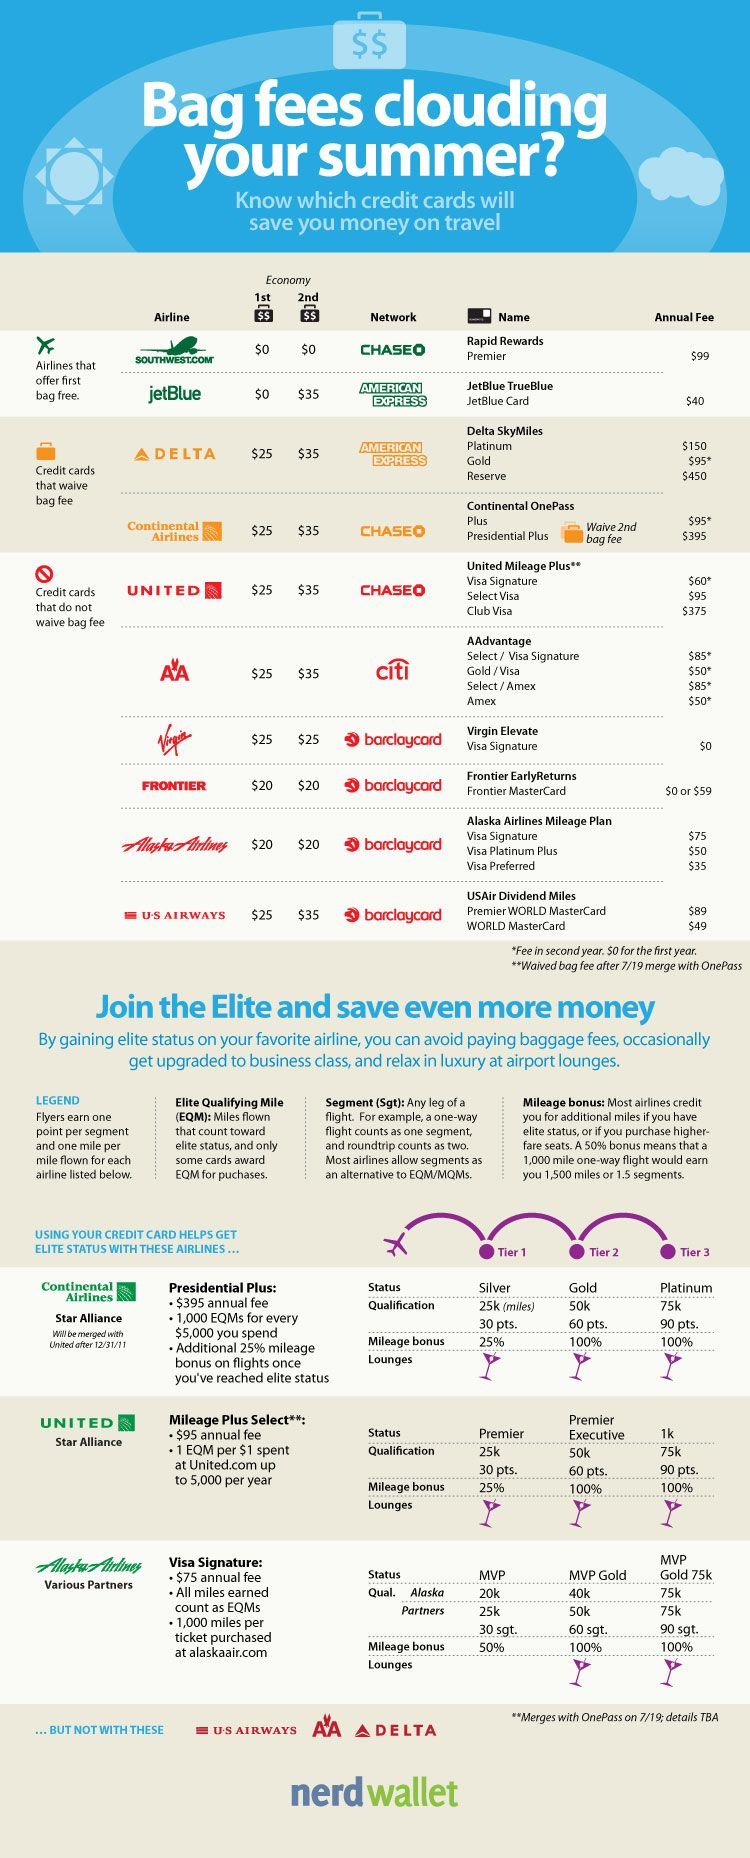 Compare airline baggage fees and credit card rewards.